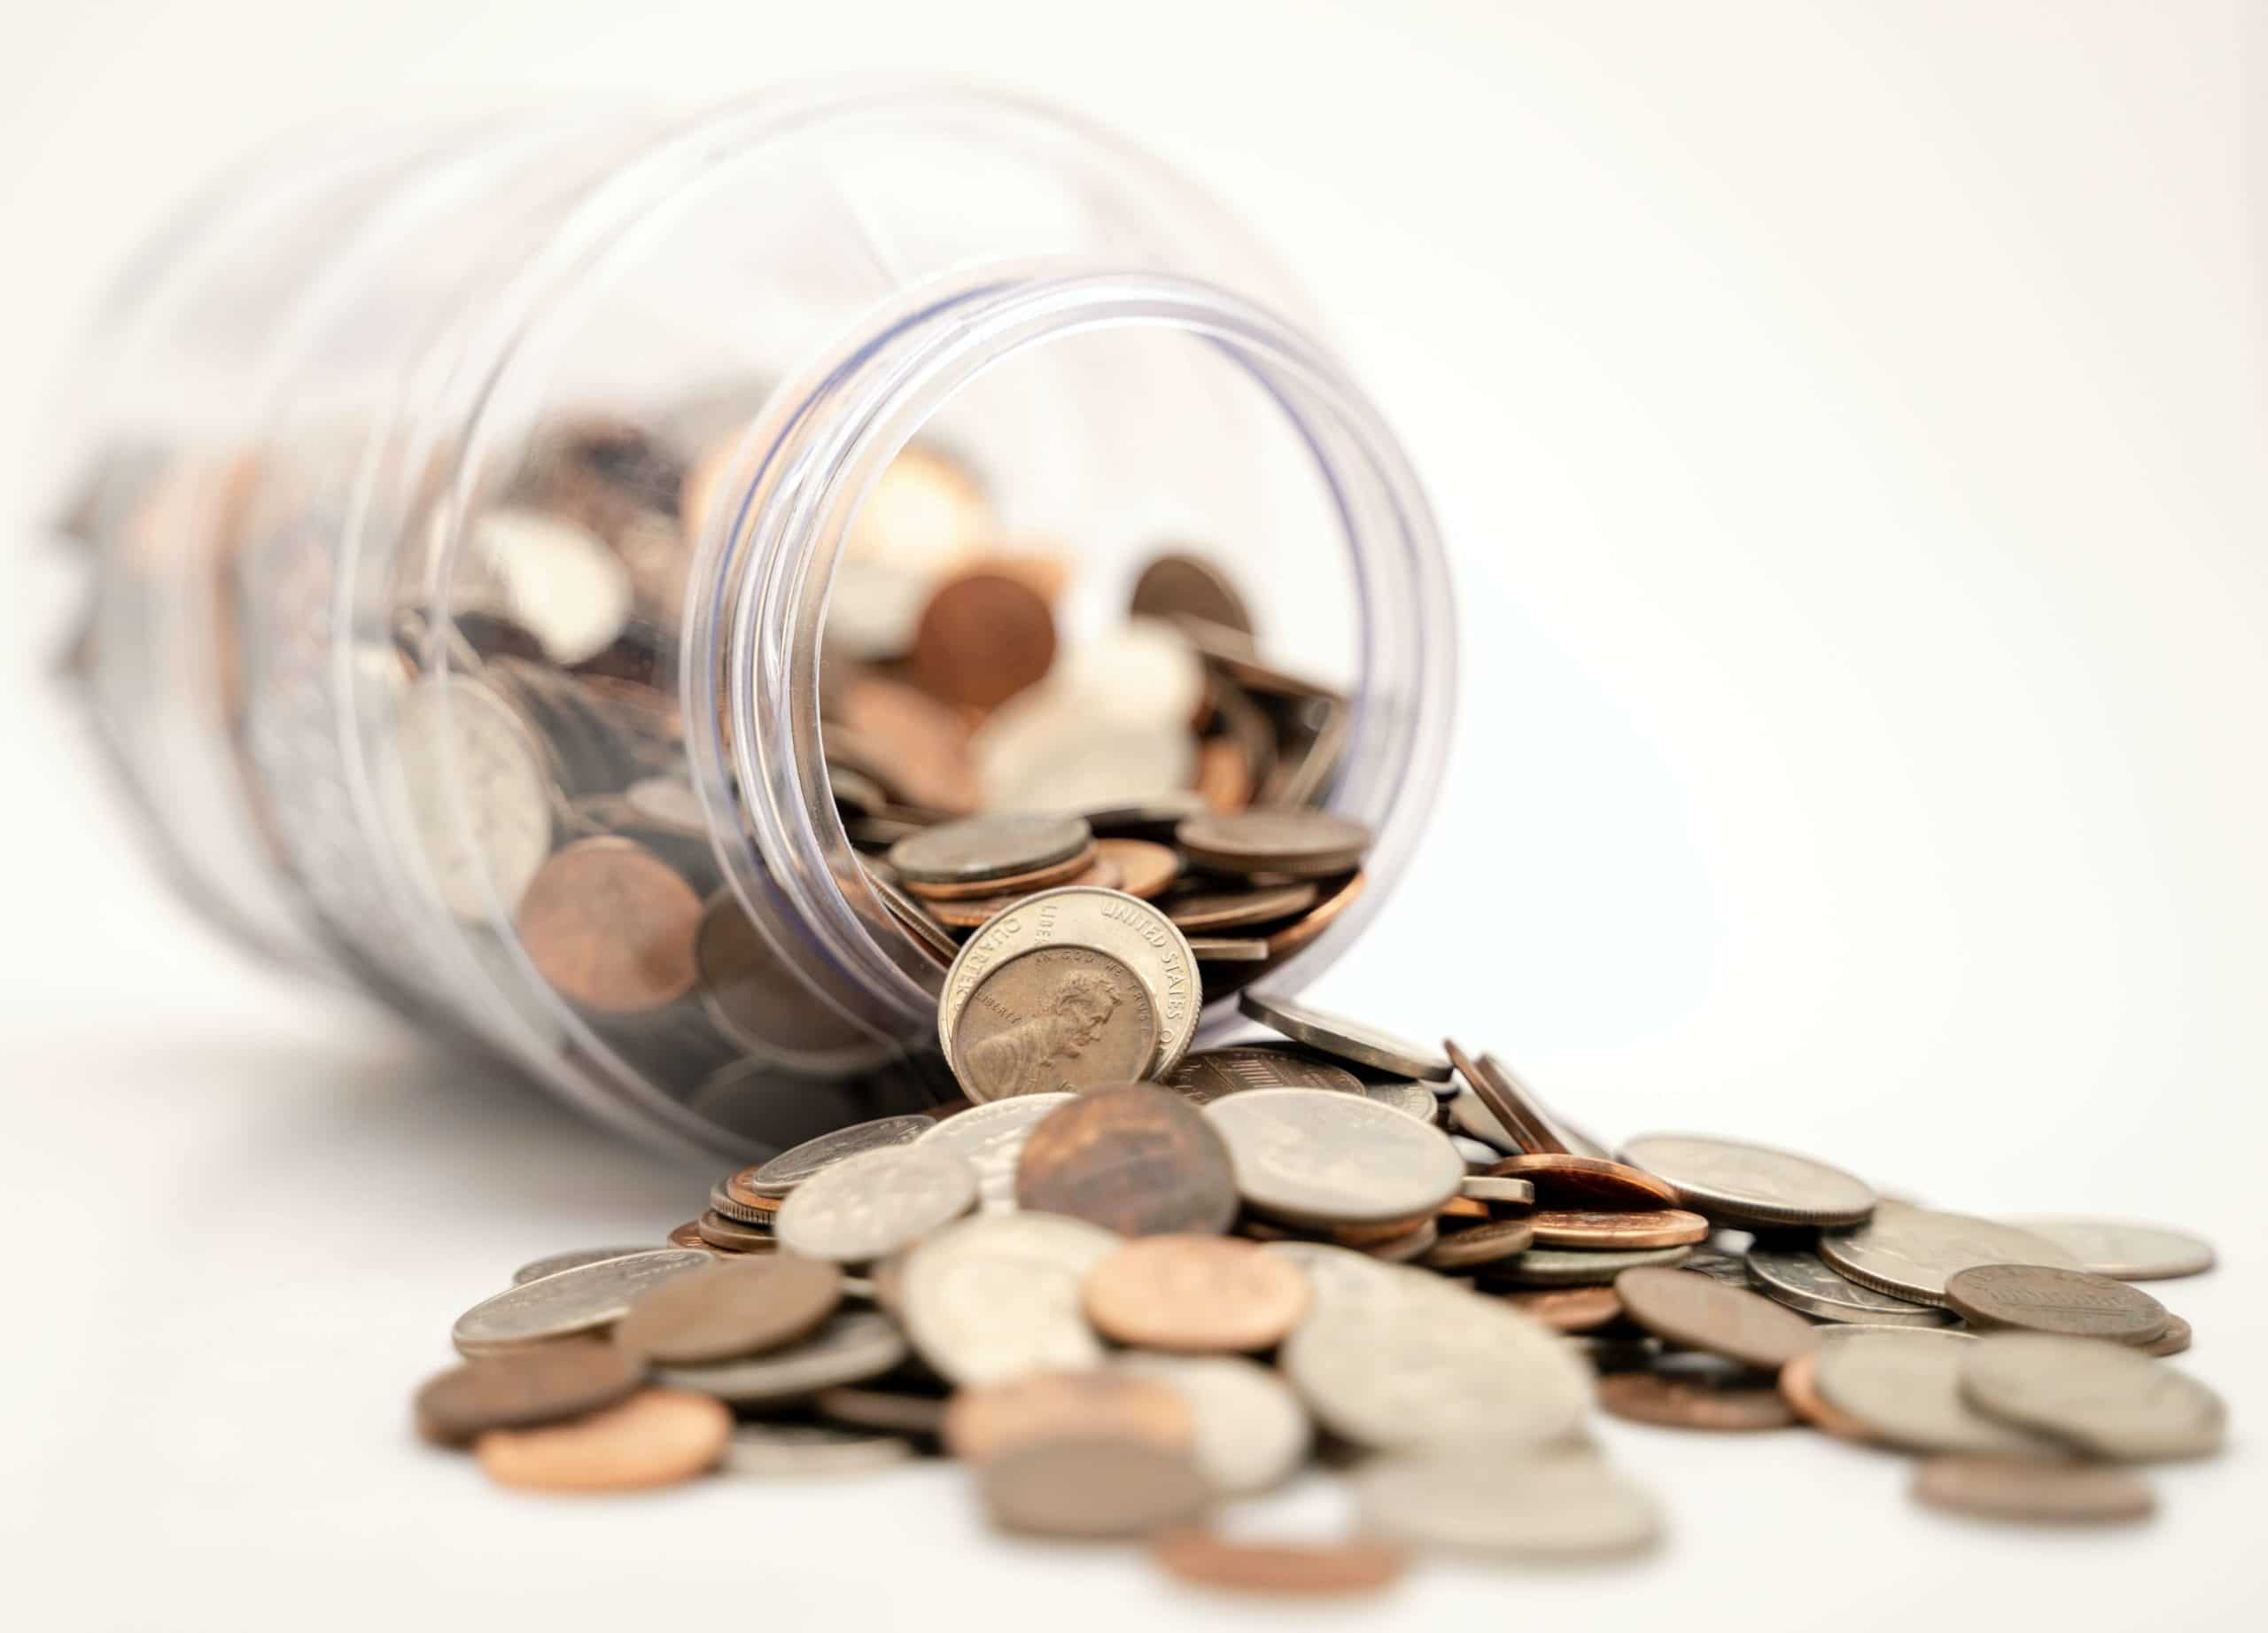 Glass filled with coins symbolizing Loan for your business in Germany